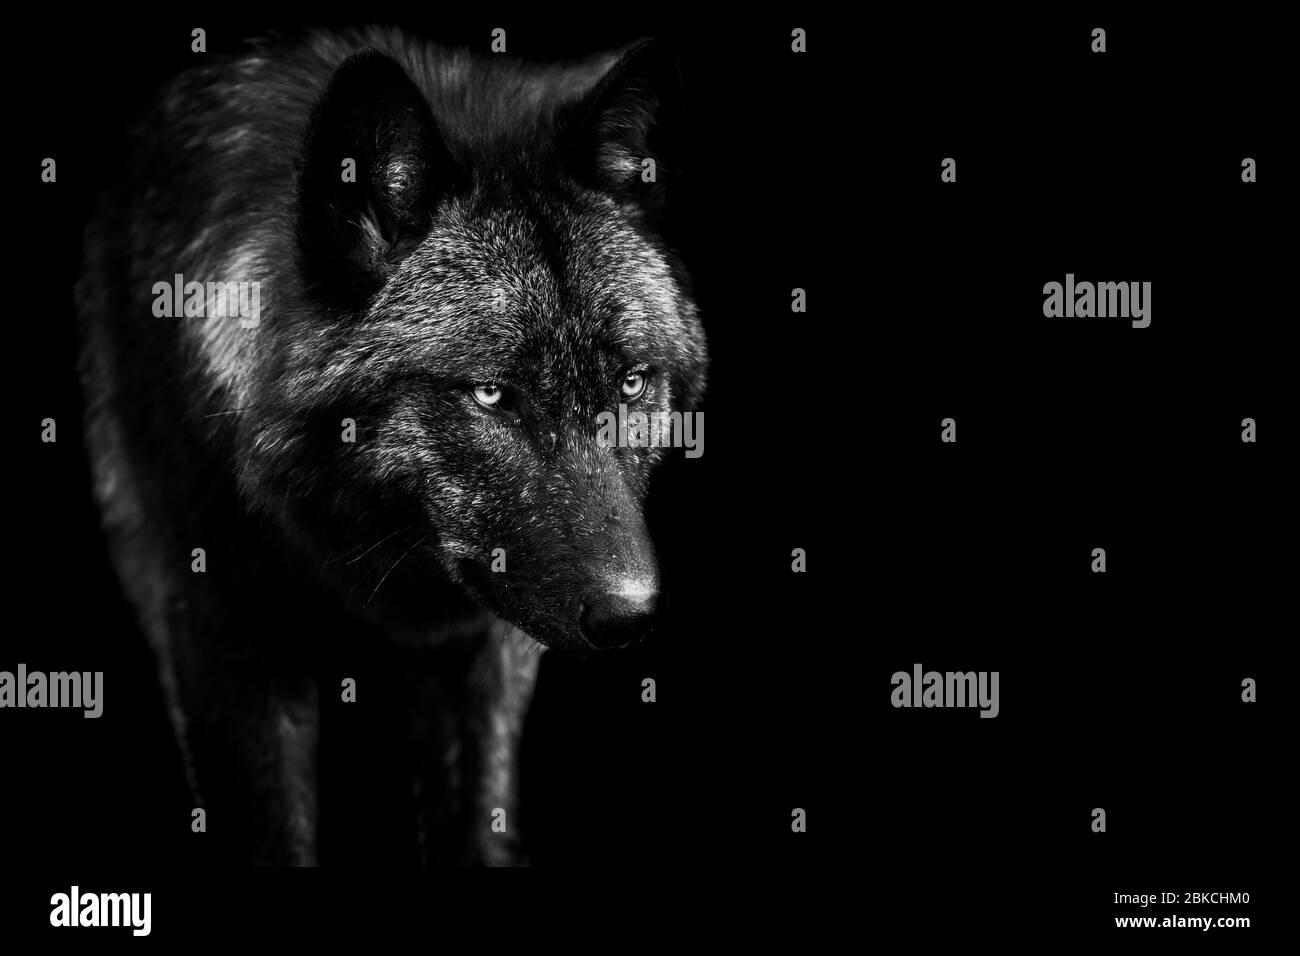 Black wolf with a black Background in B&W Stock Photo